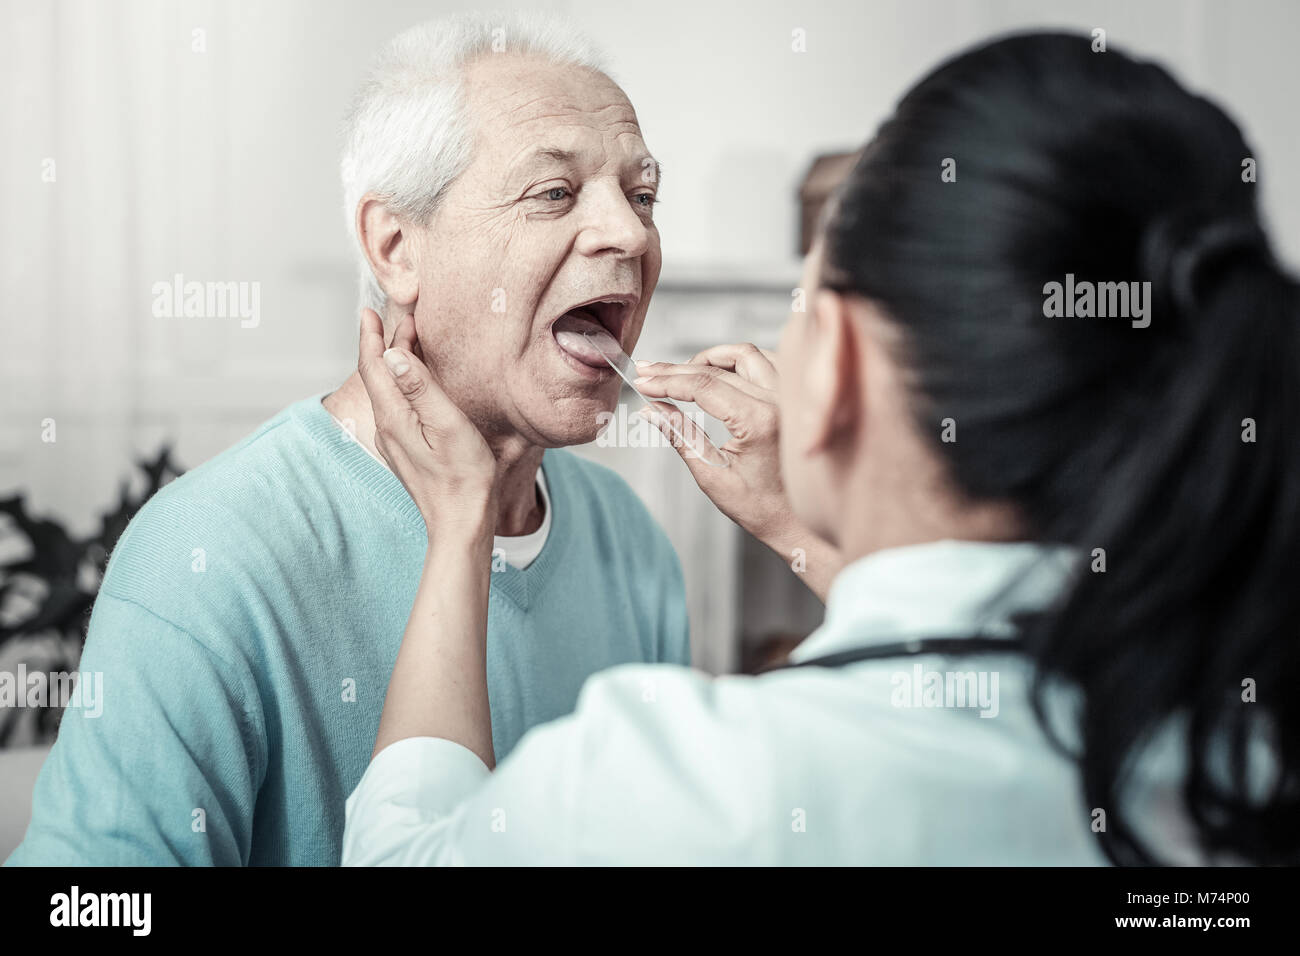 Gray aged man having examination and sitting opposite the nurse. - Stock Image